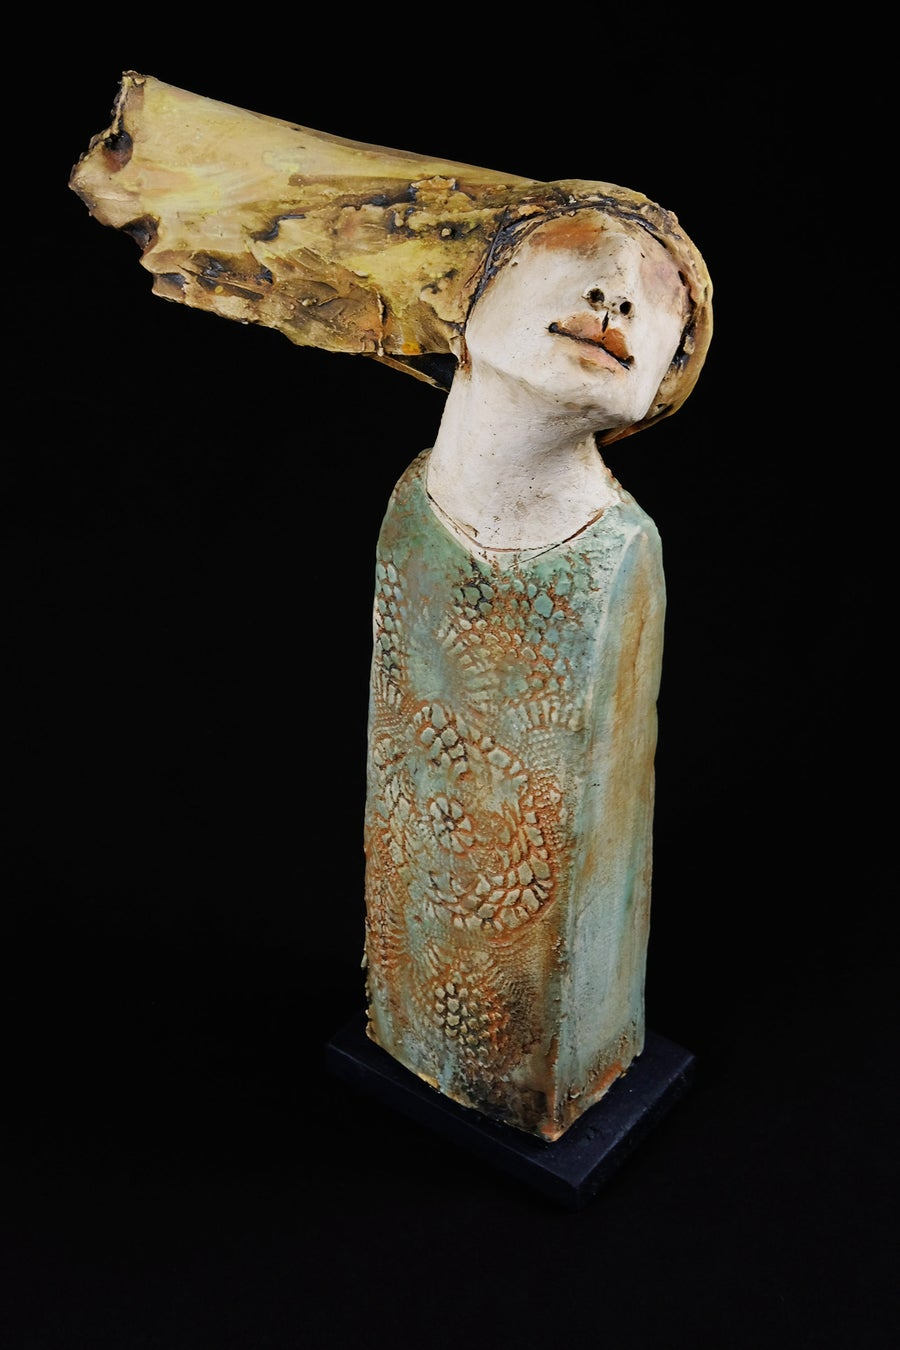 Image of CHRISTY KEENEY 'FISHERMANS ANGEL' CERAMIC SCULPTURE